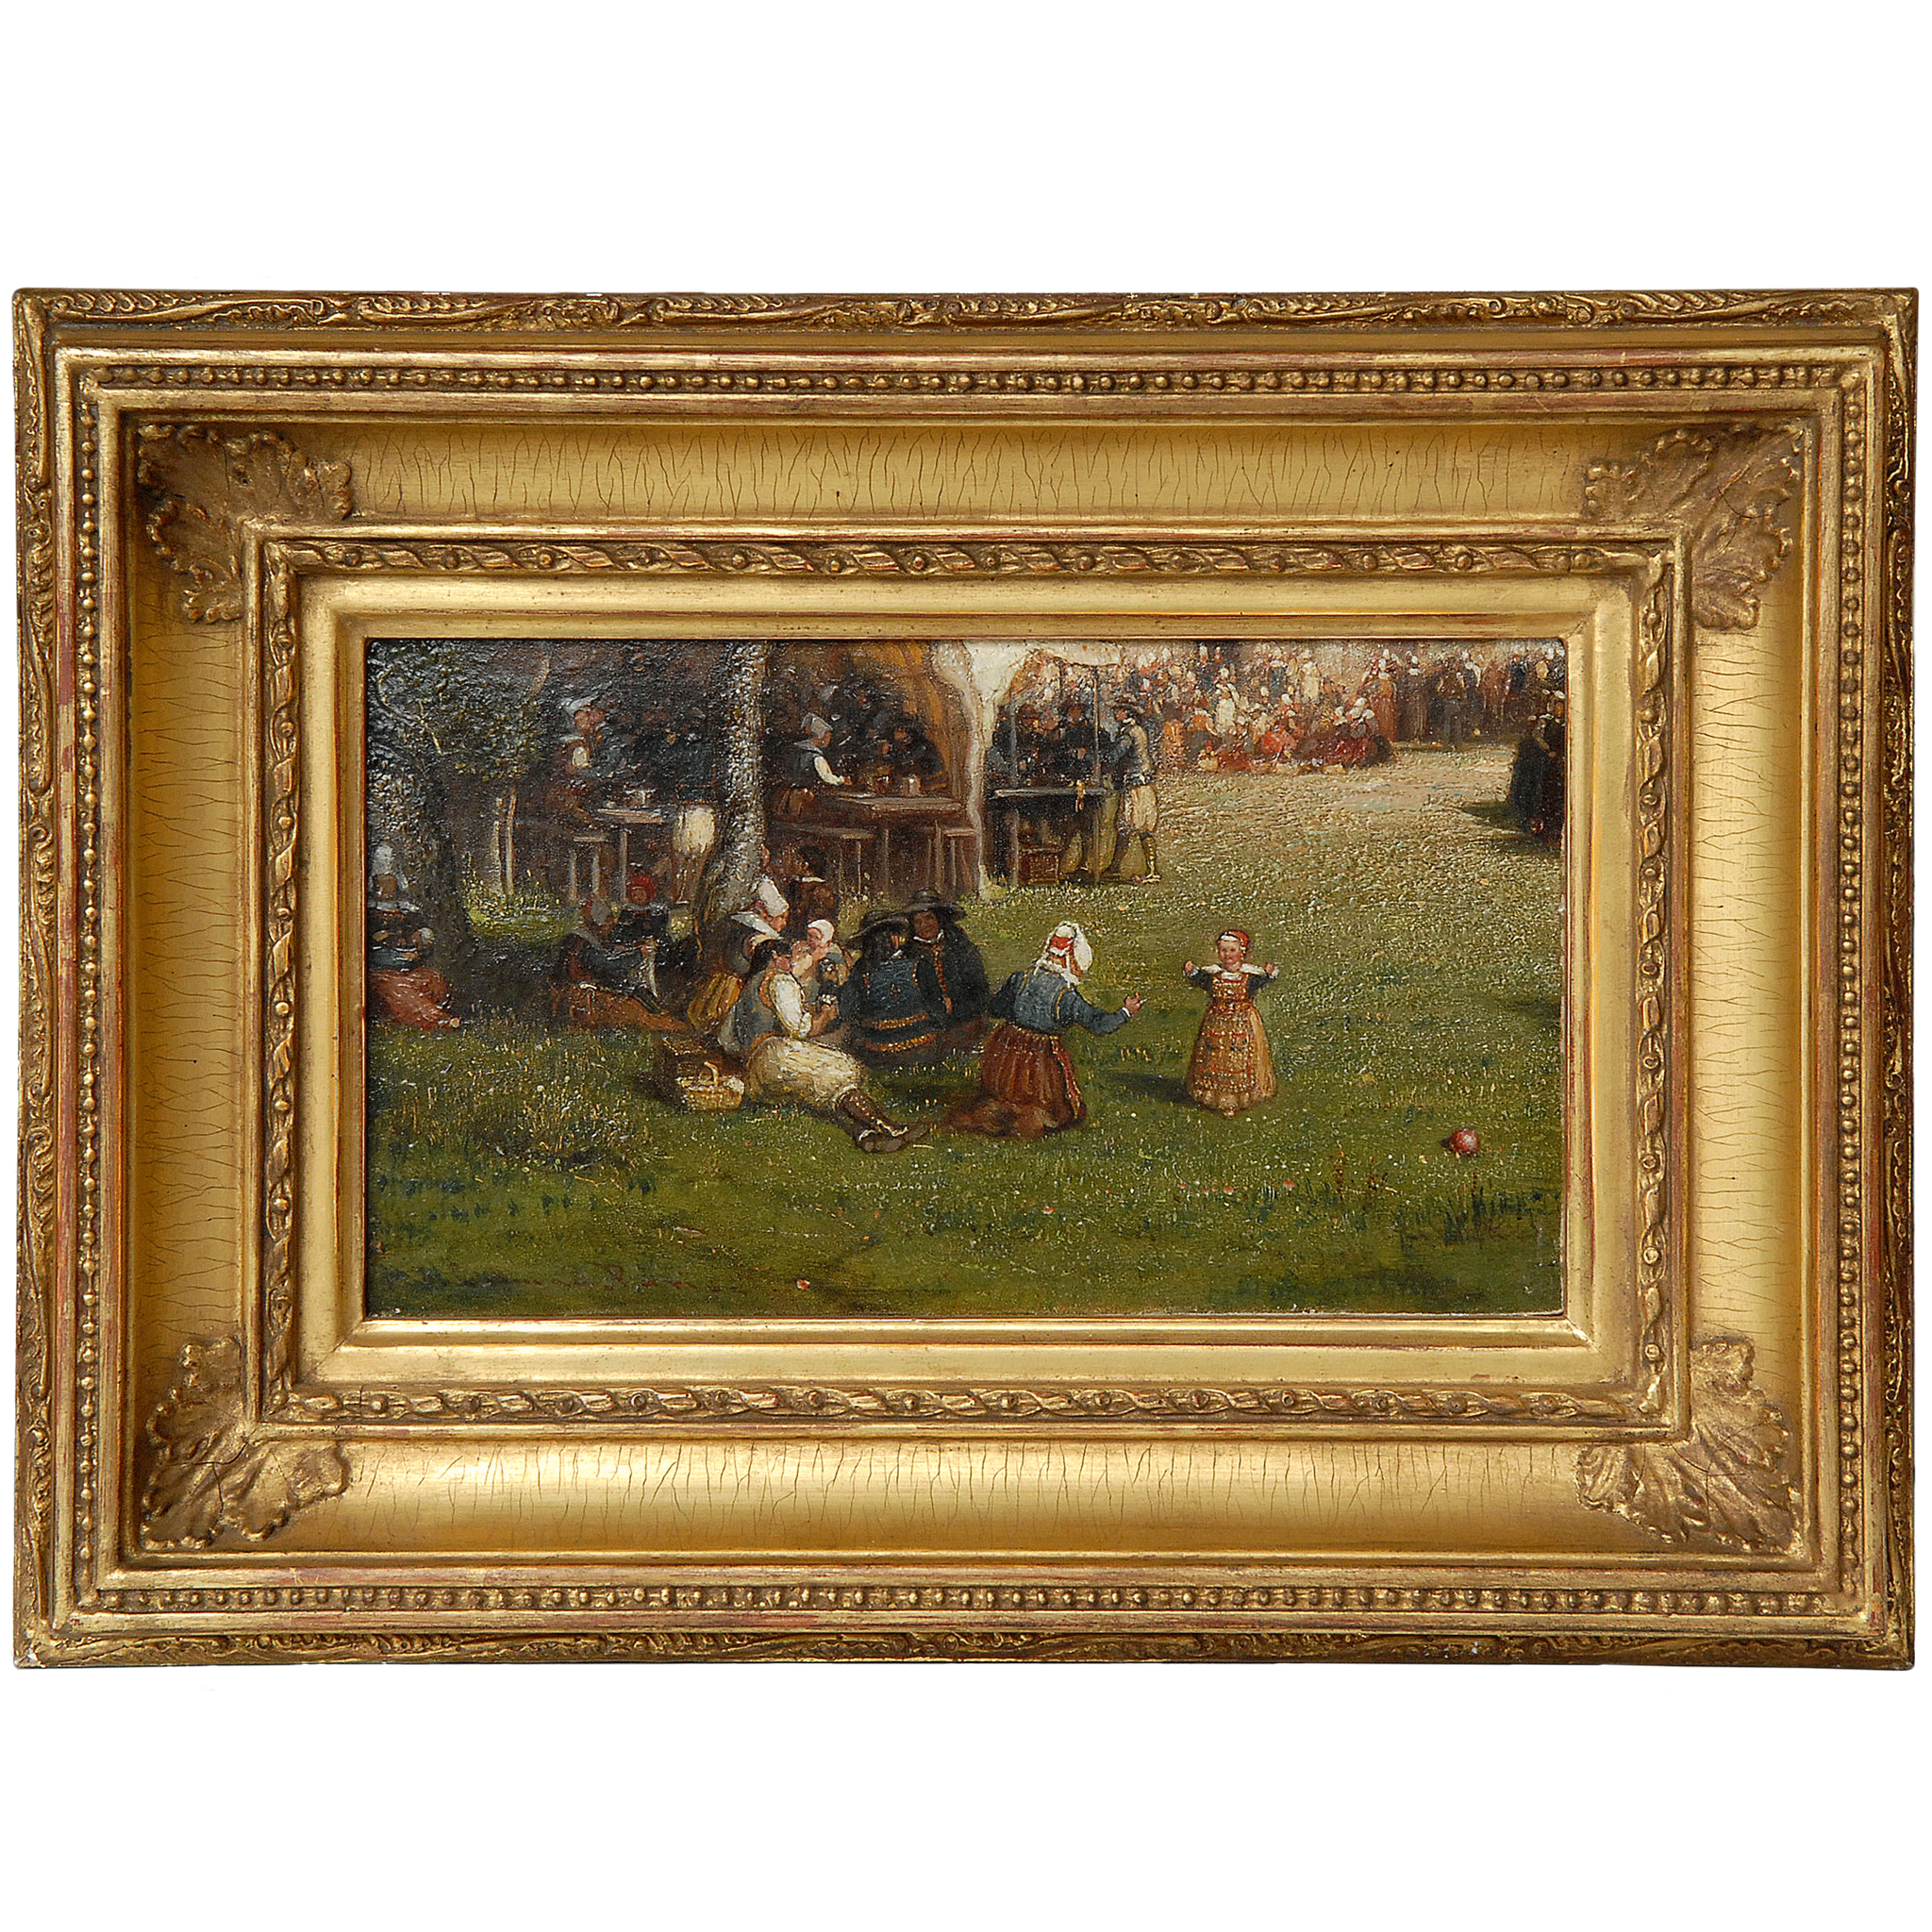 Oil Painting on Board of a Picnic by Samuel Colman